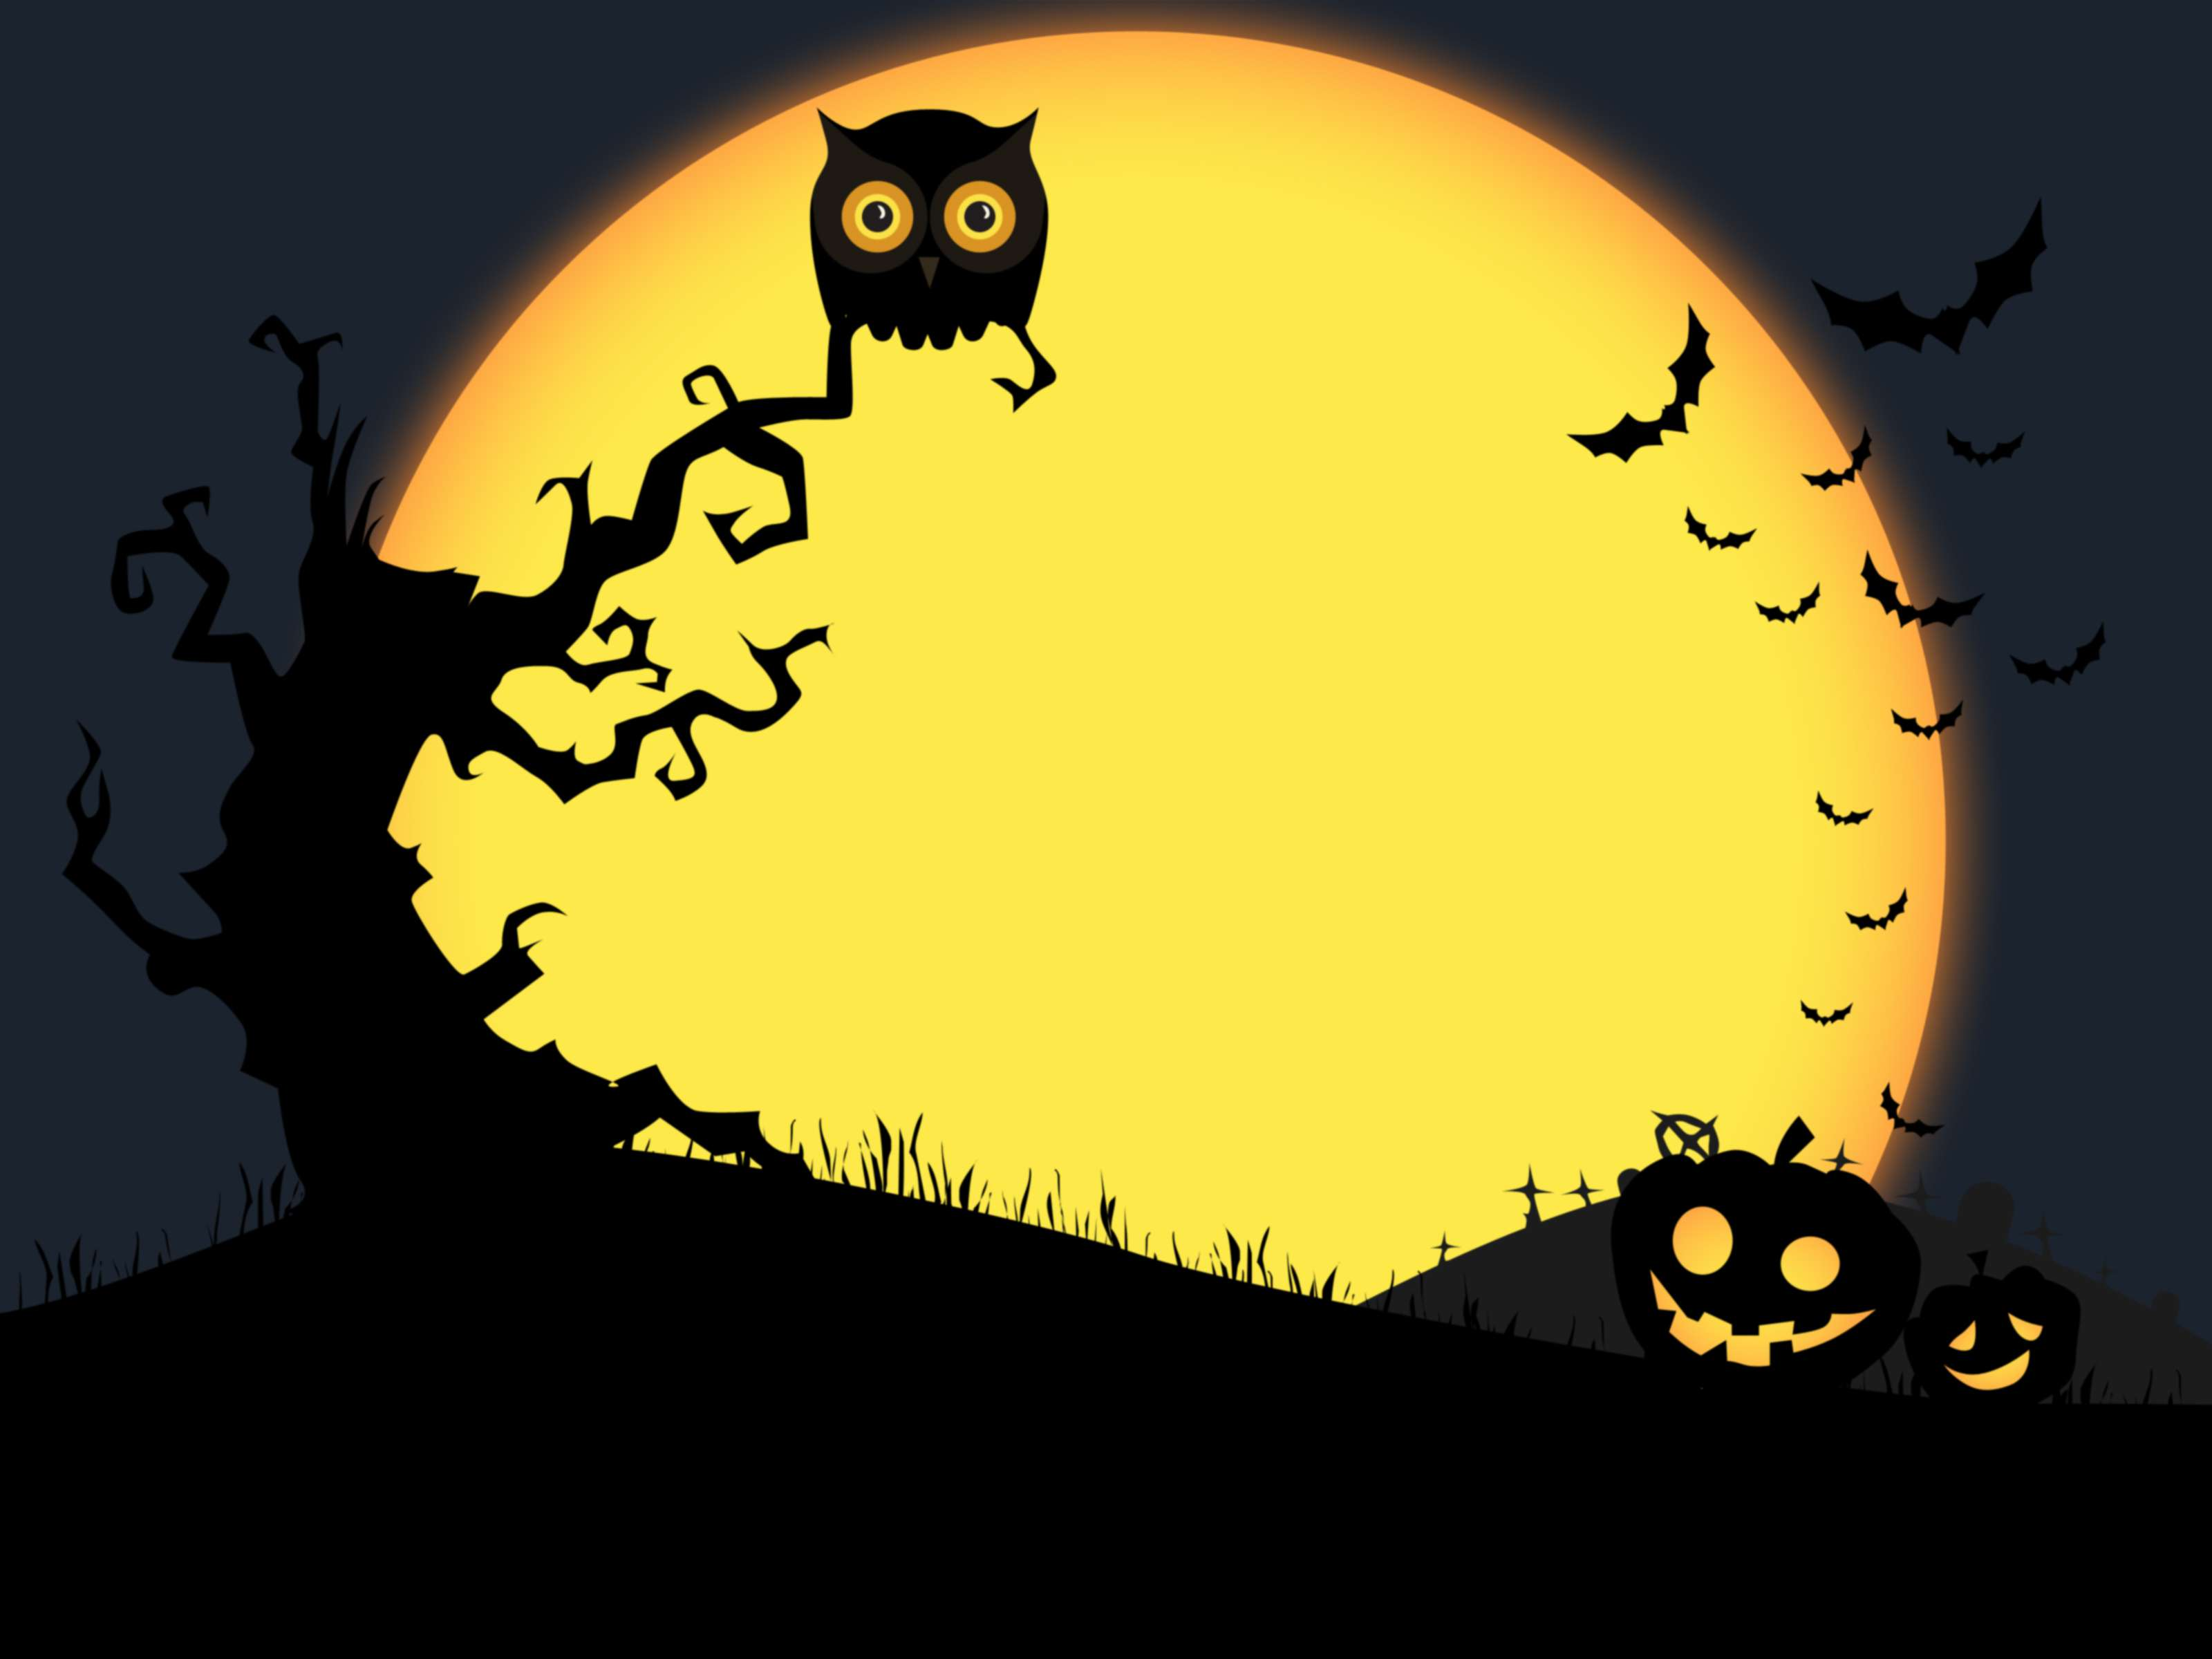 45 Spooky and Fun Halloween Wallpapers 3200x2400